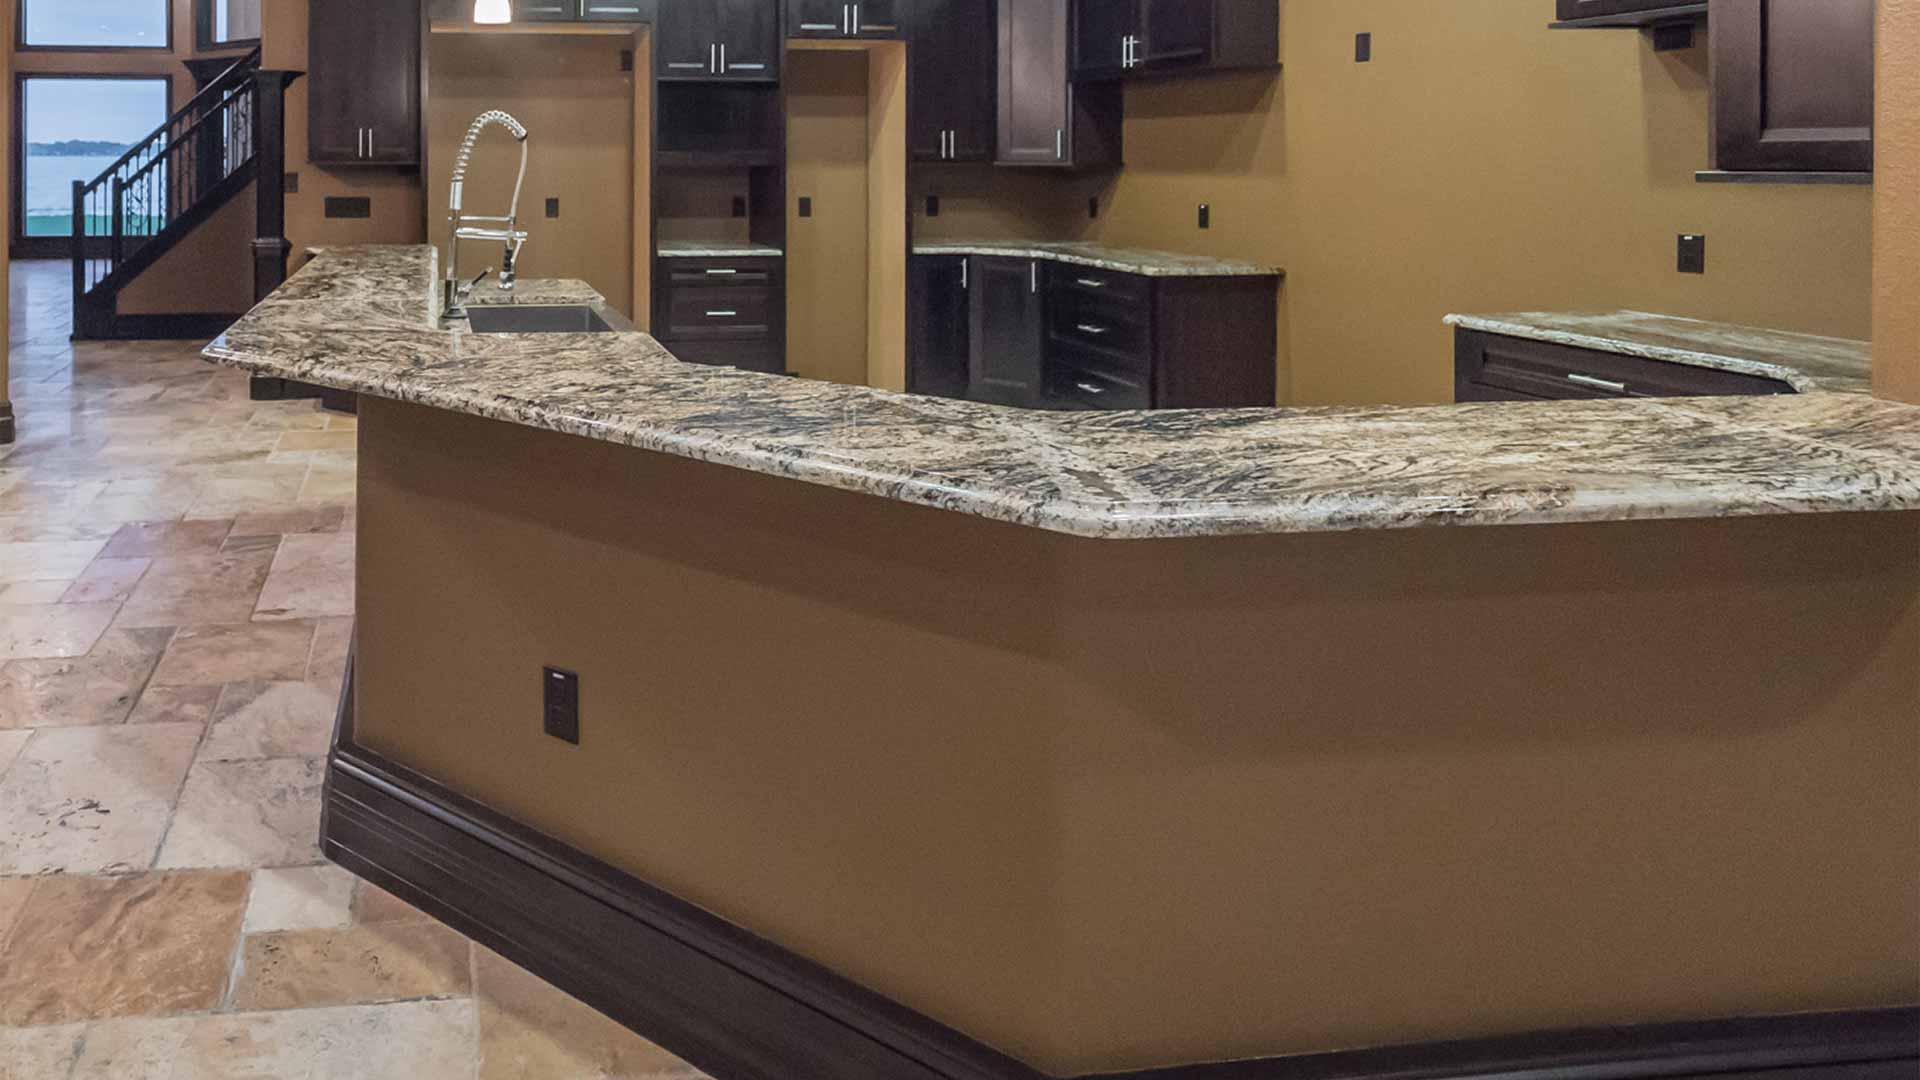 Custom marble kitchen countertops installed in Plant City, FL.